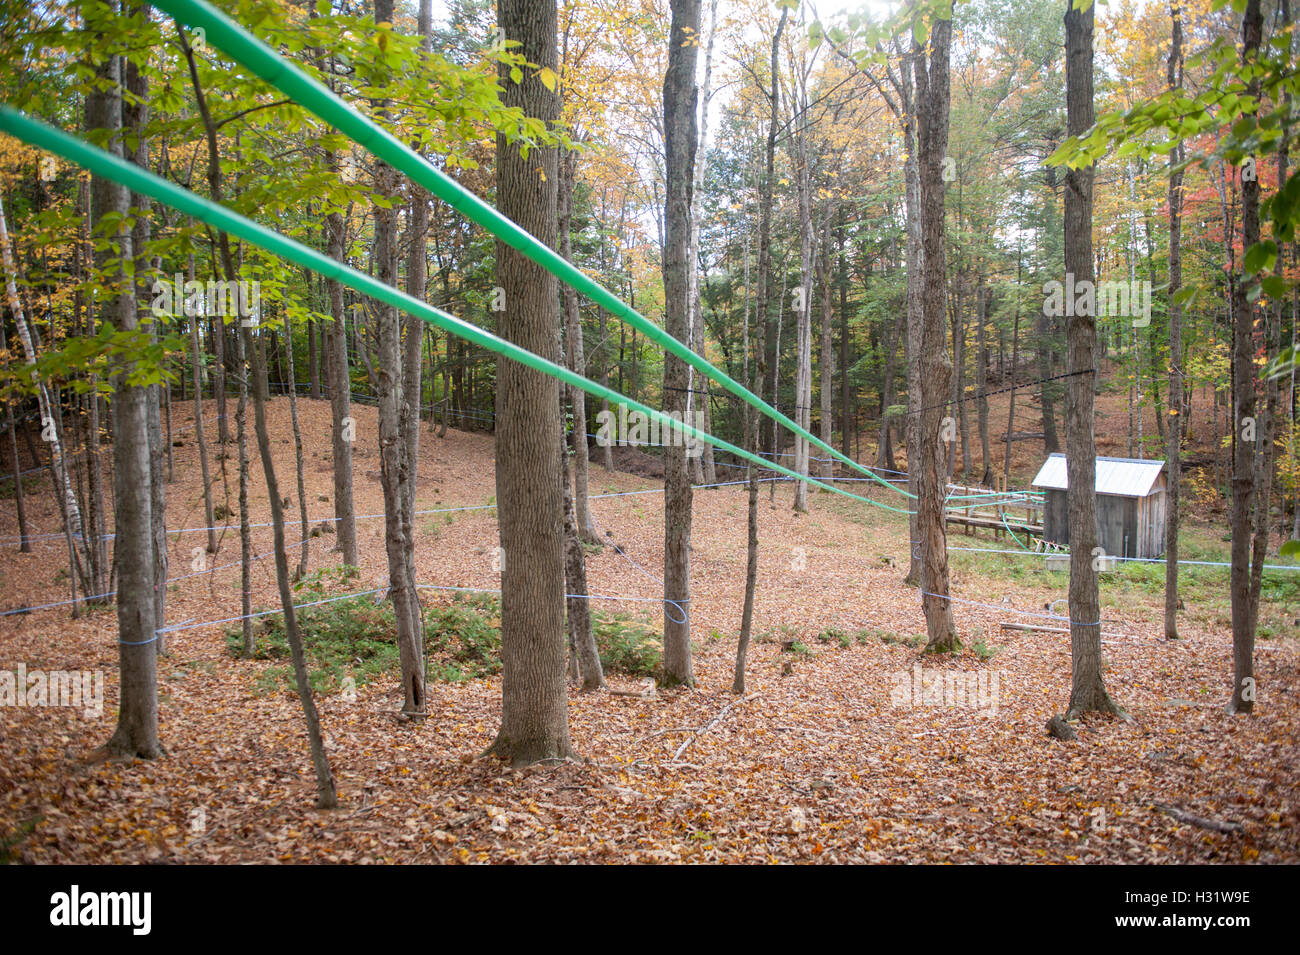 Taps set up in maple trees using plastic tubing to collect sap for maple syrup in Gorham, Maine. - Stock Image